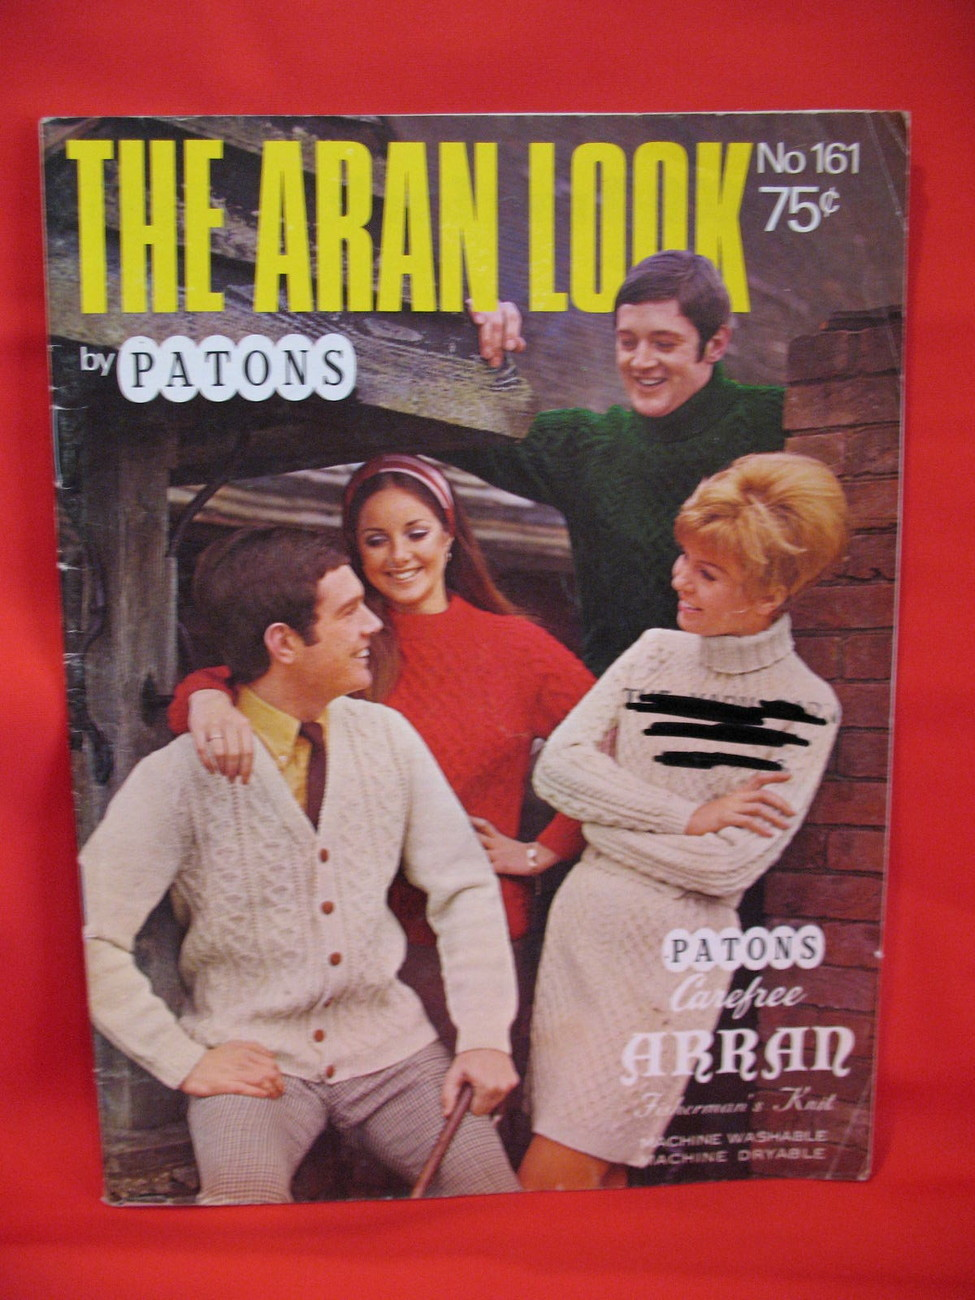 Patons Aran Style Fishermans Knit Knitting Patterns Sweaters Bonanza